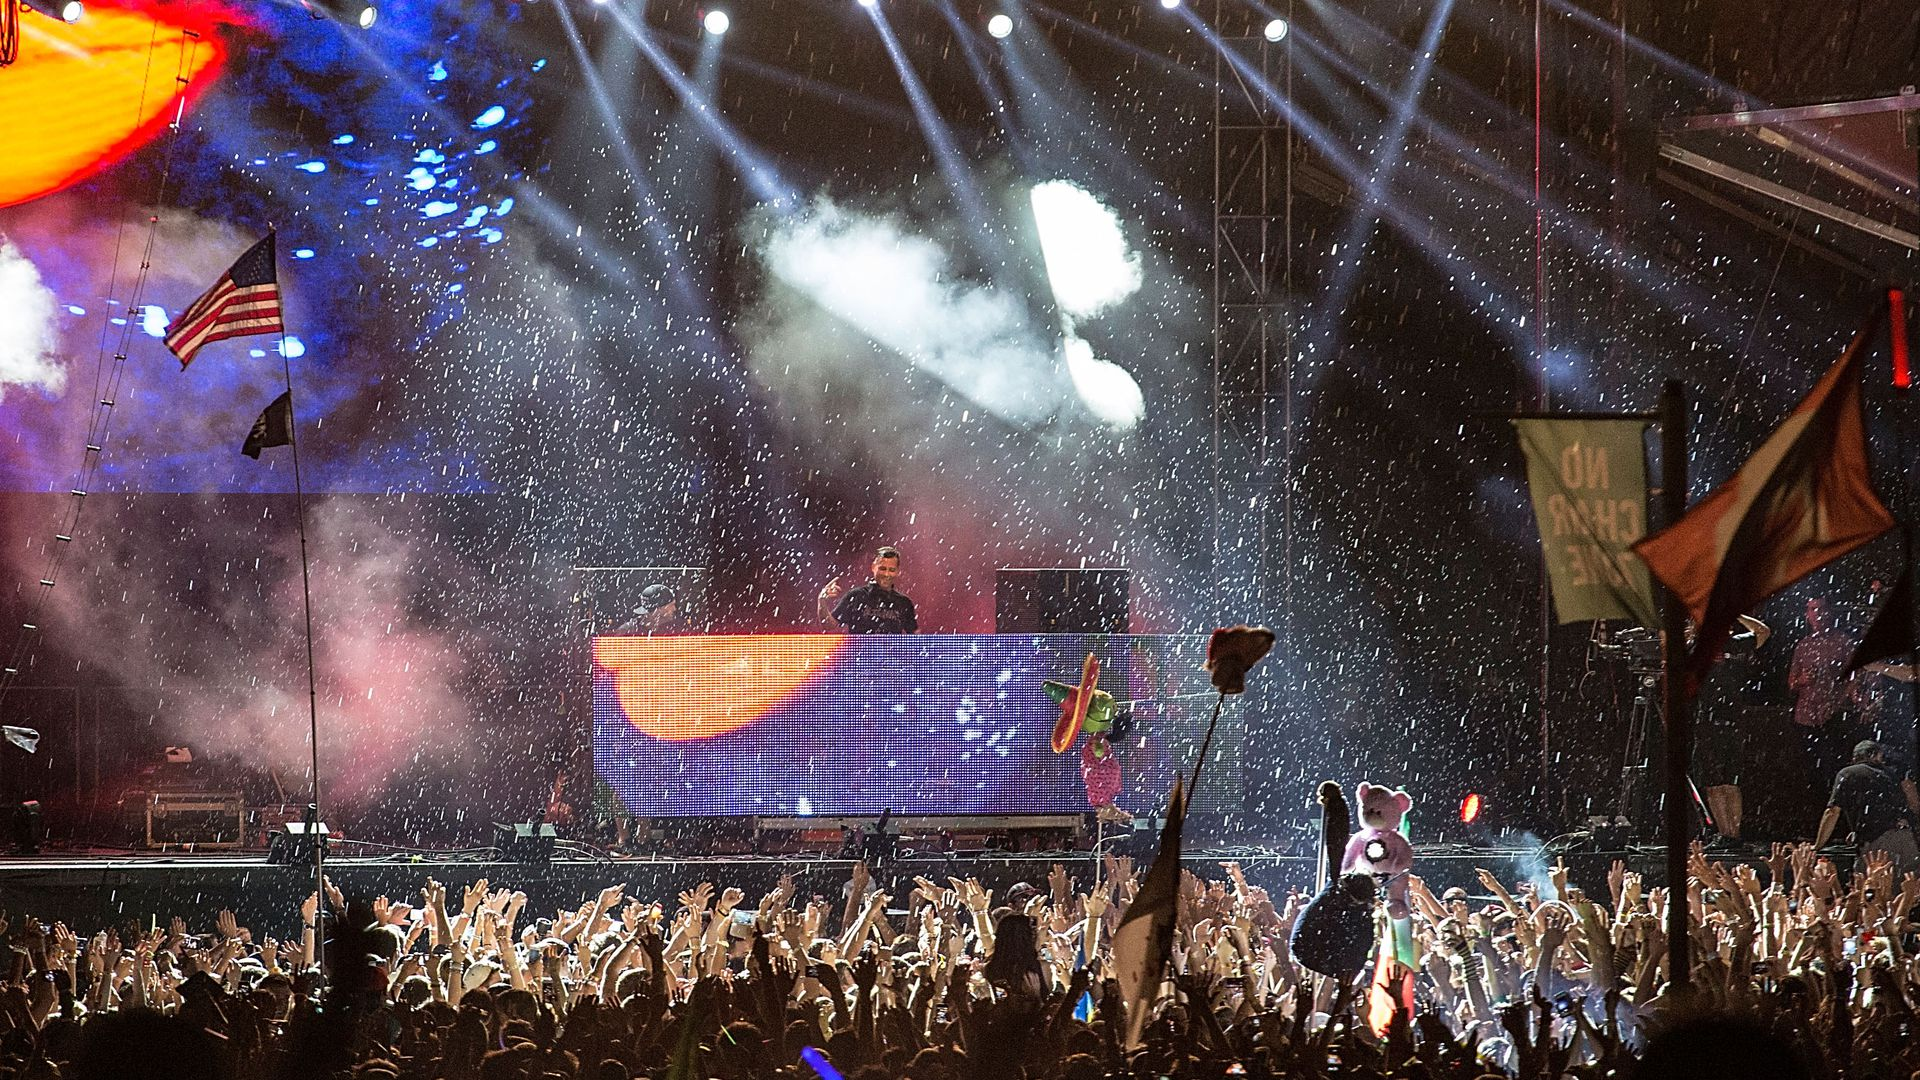 Kaskade performs in the rain during the 2013 ACL Festival